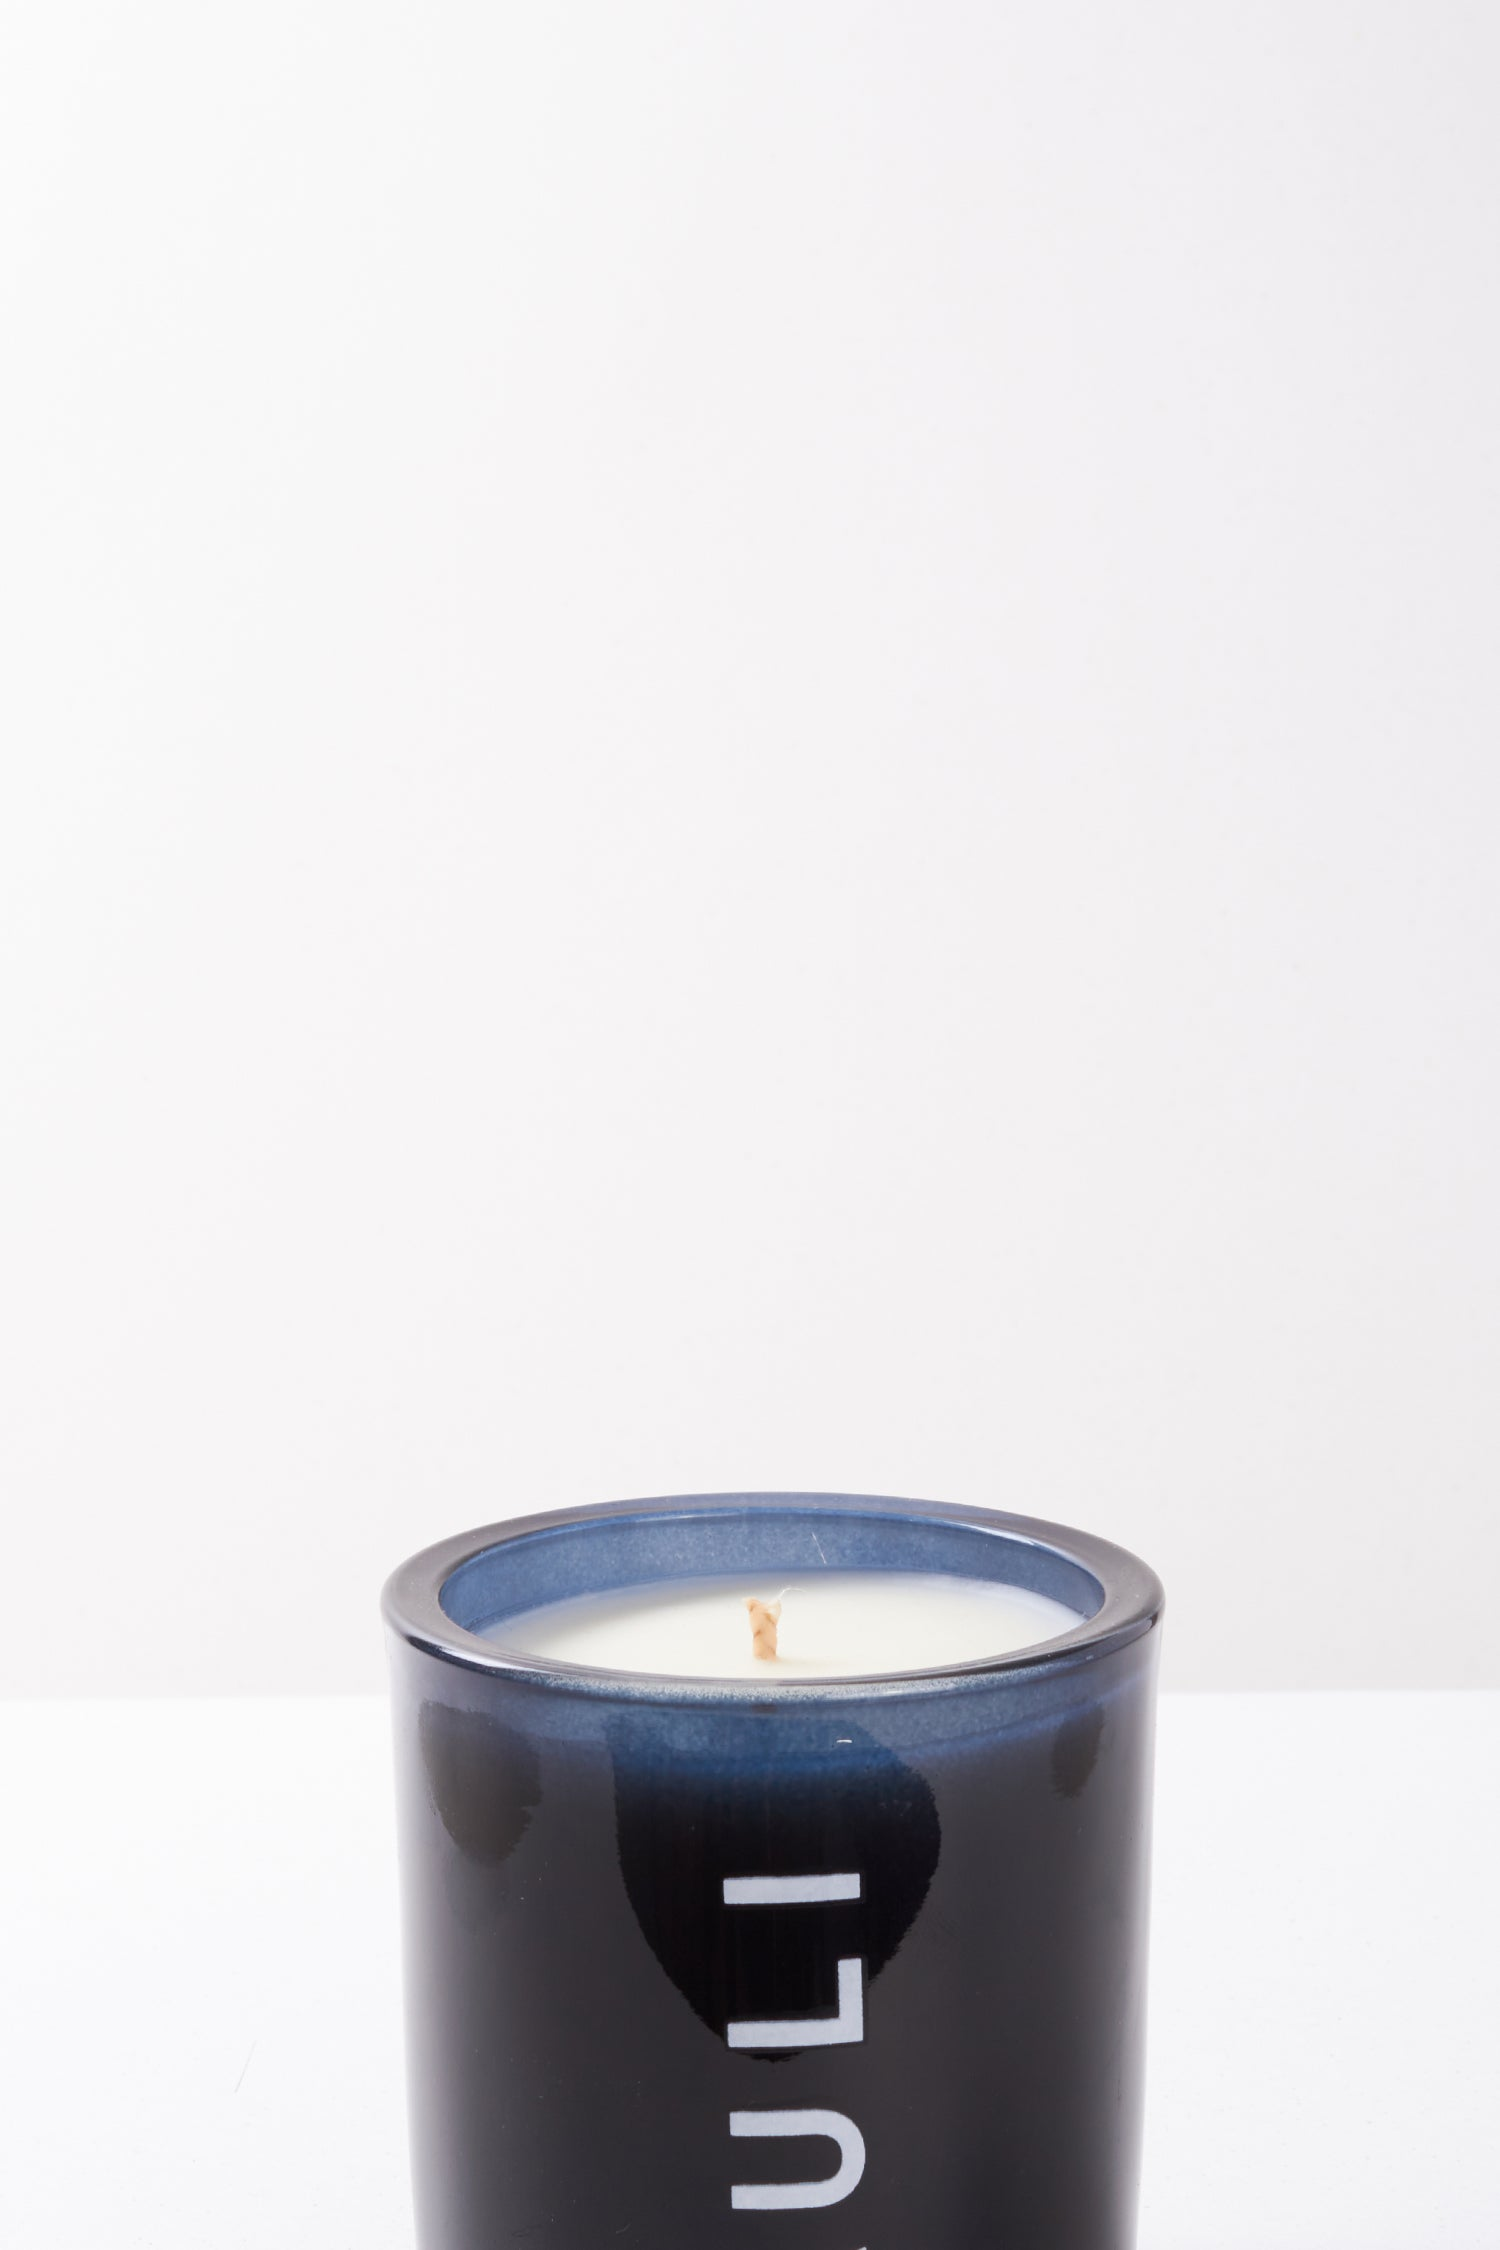 CEDRELLO CITRON CANDLE 220g